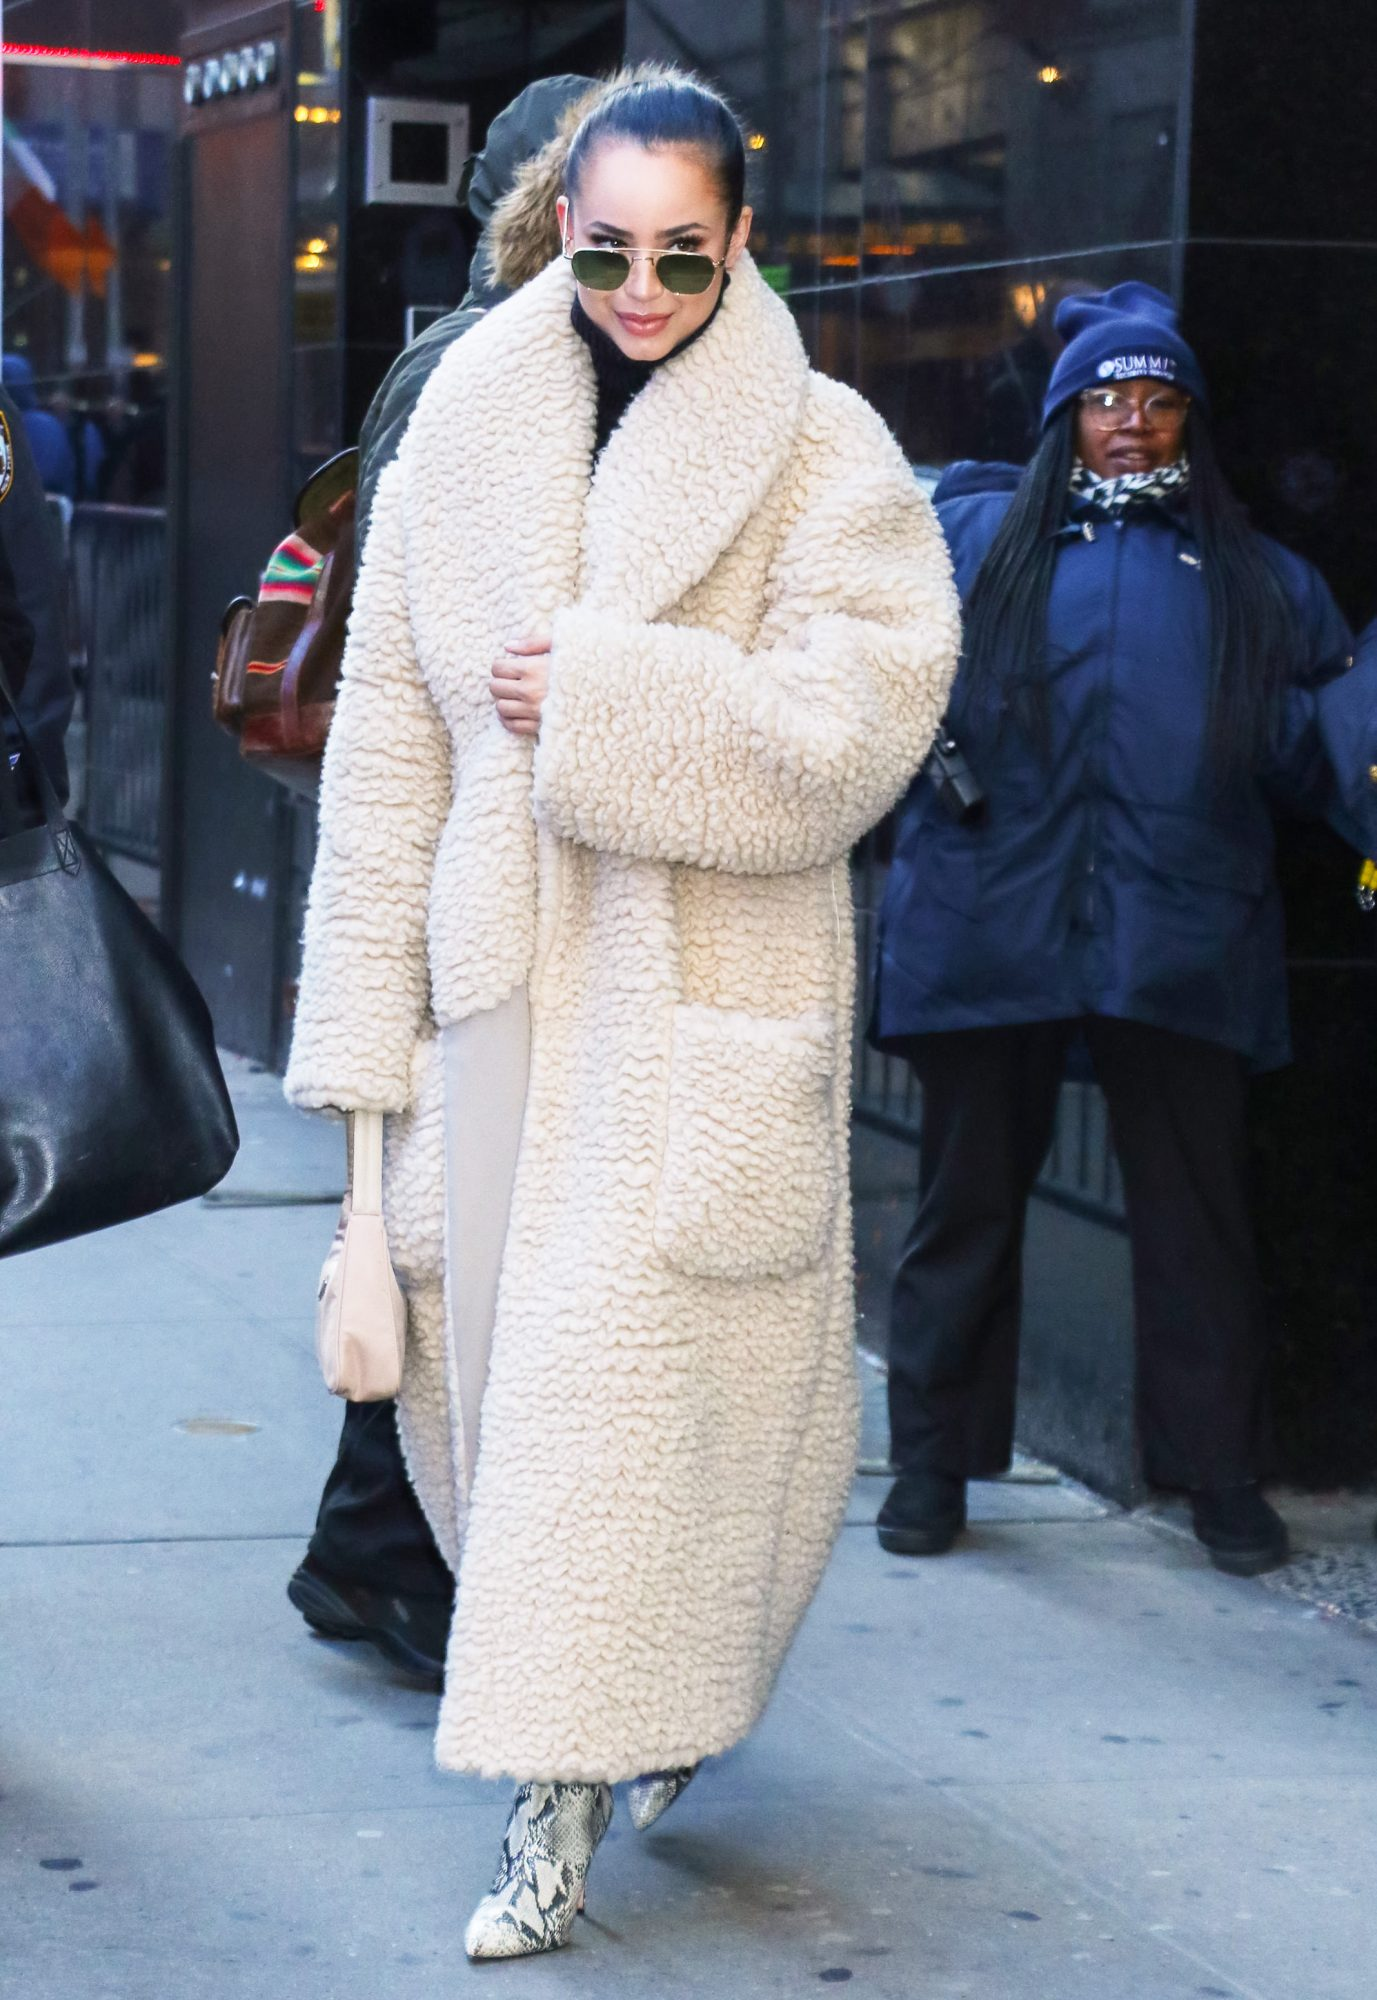 Celebrity Sightings In New York - January 29, 2020